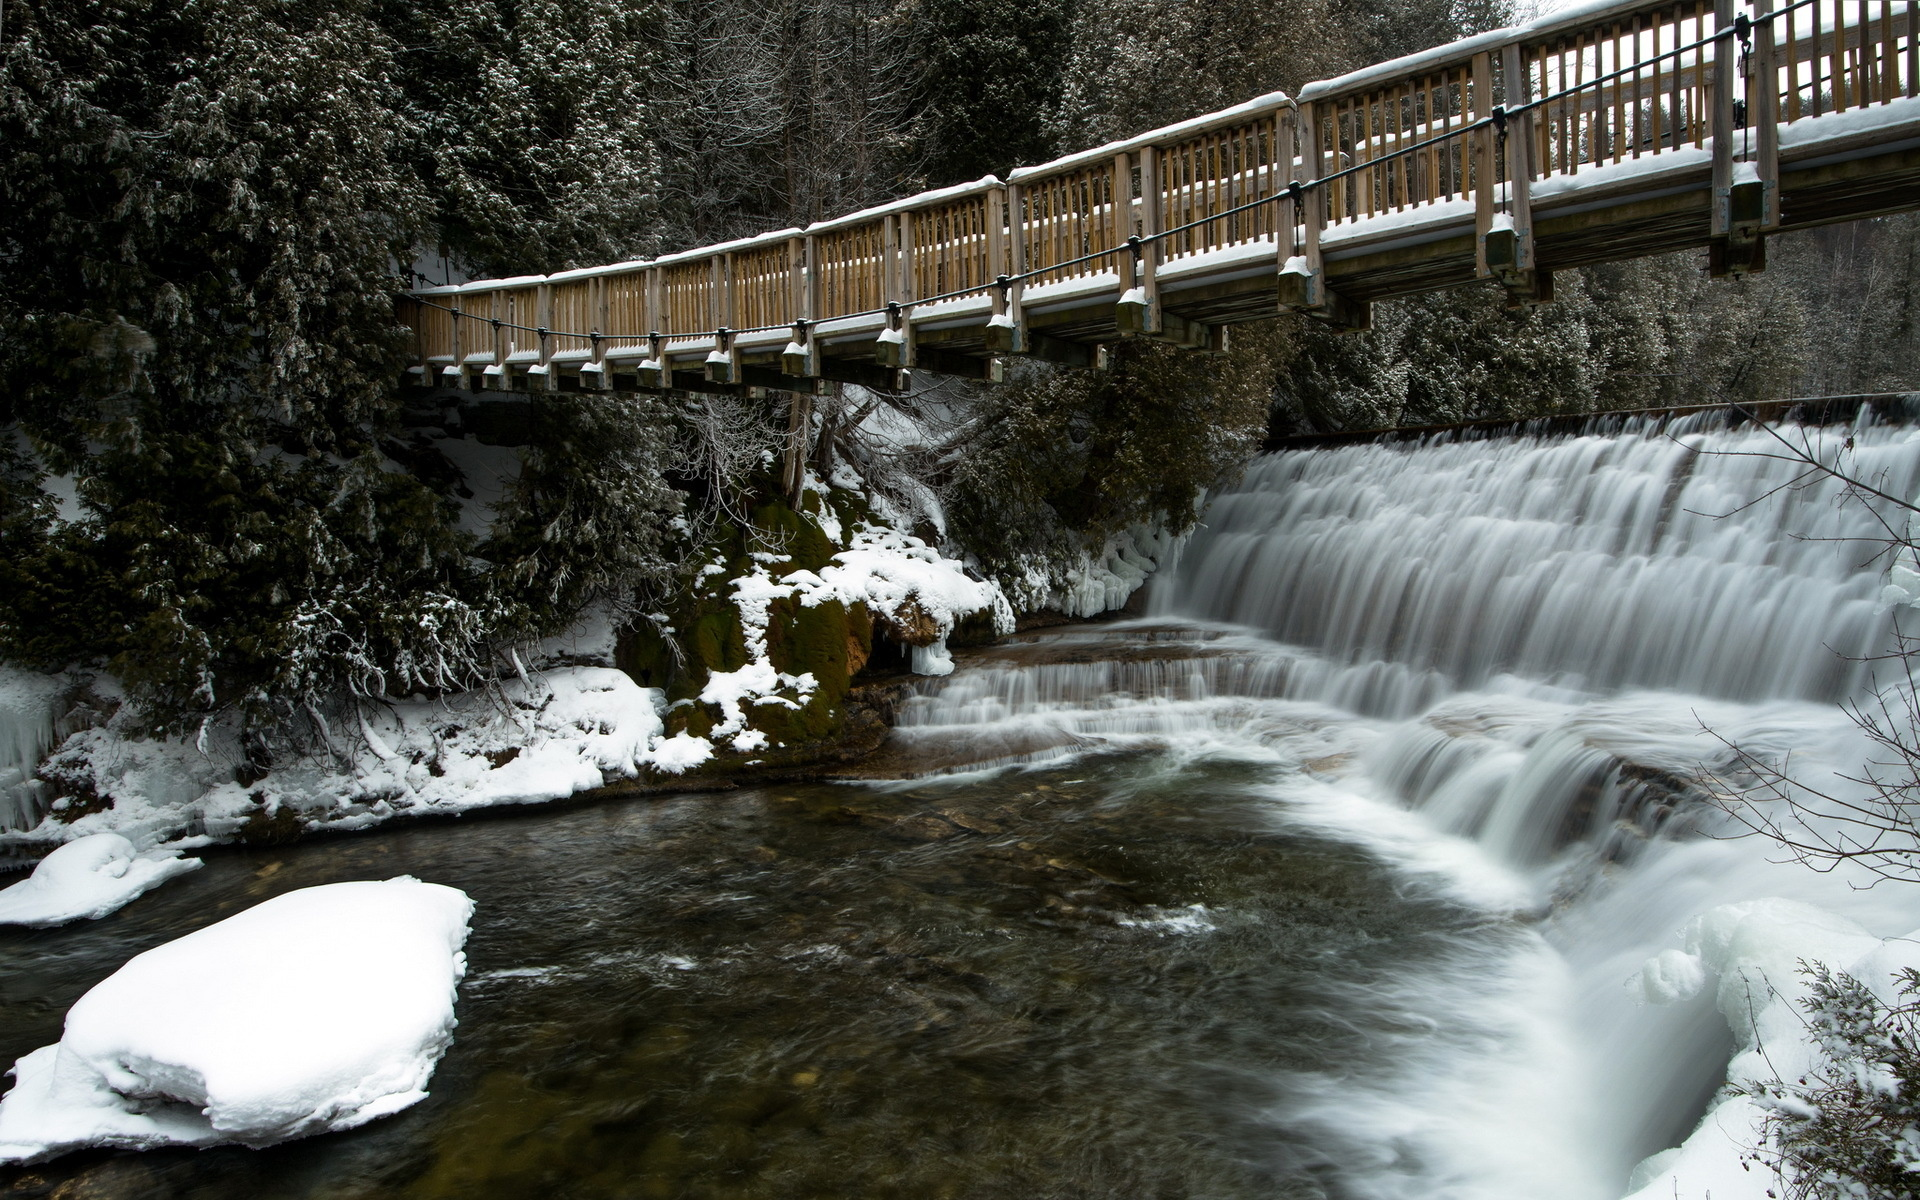 River bridge winter landscape waterfall wallpaper 1920x1200 46739 1920x1200